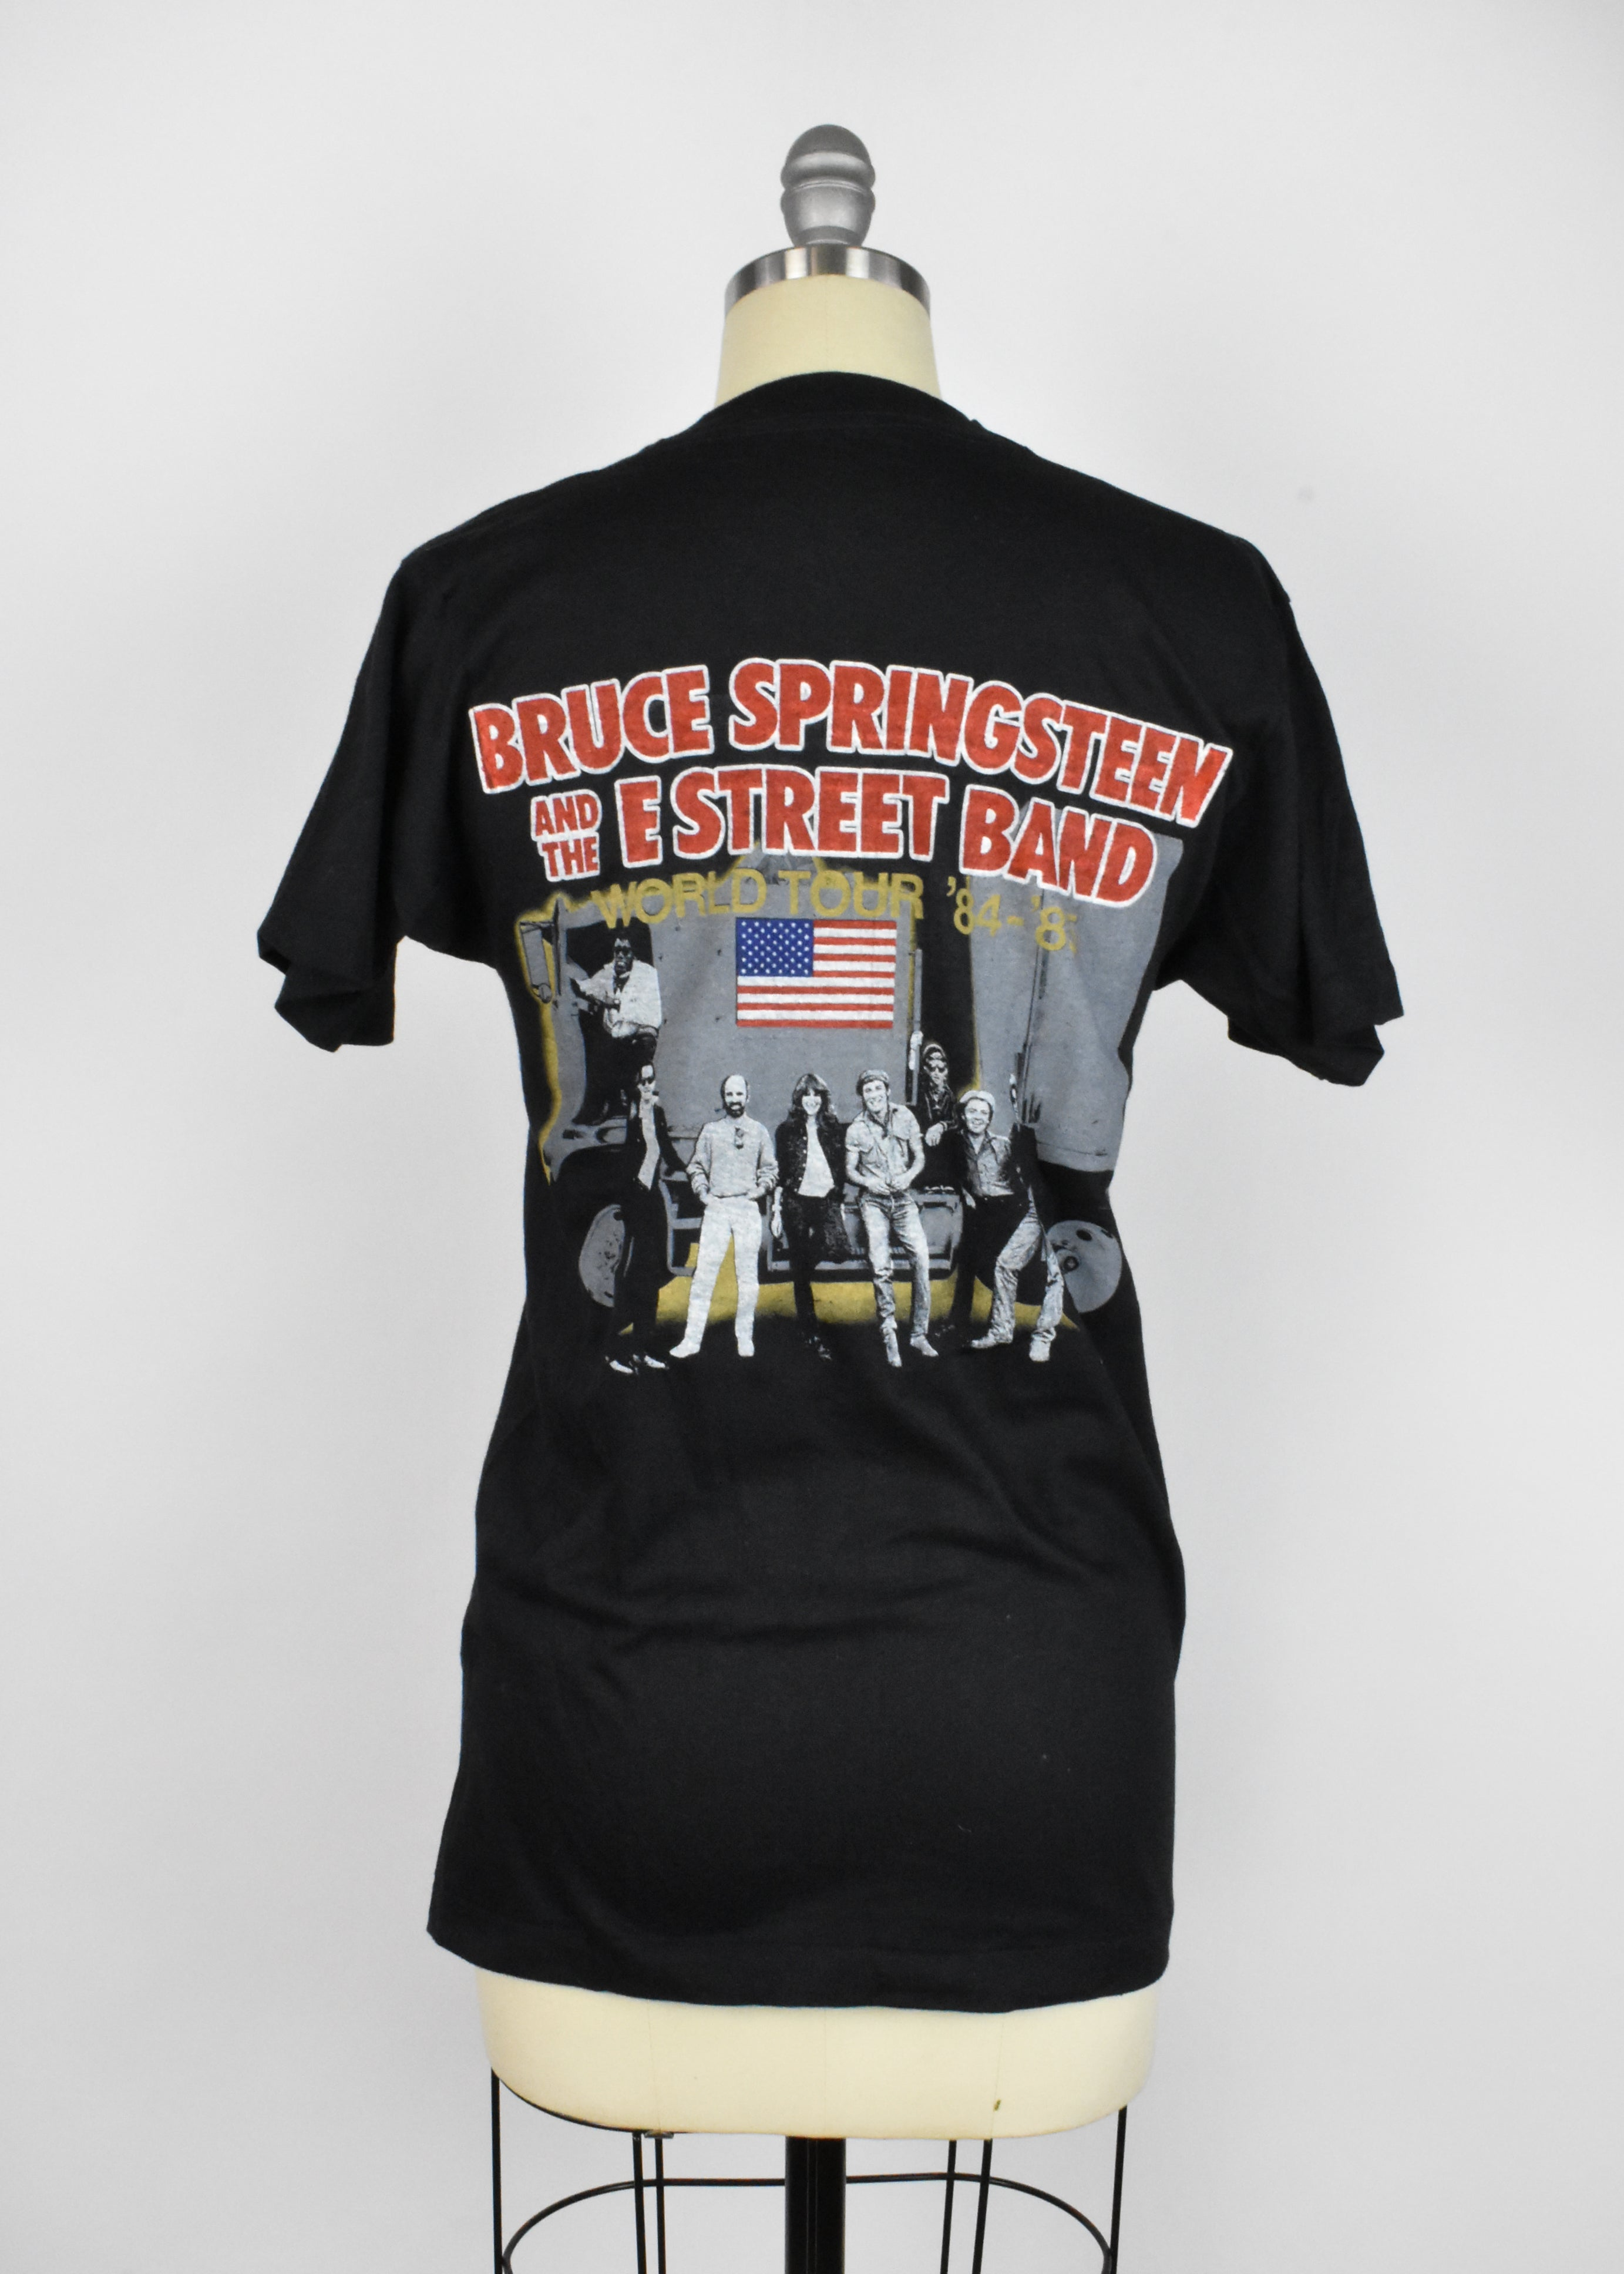 Bruce Springsteen and The E Street Band 1984 Tour T-Shirt